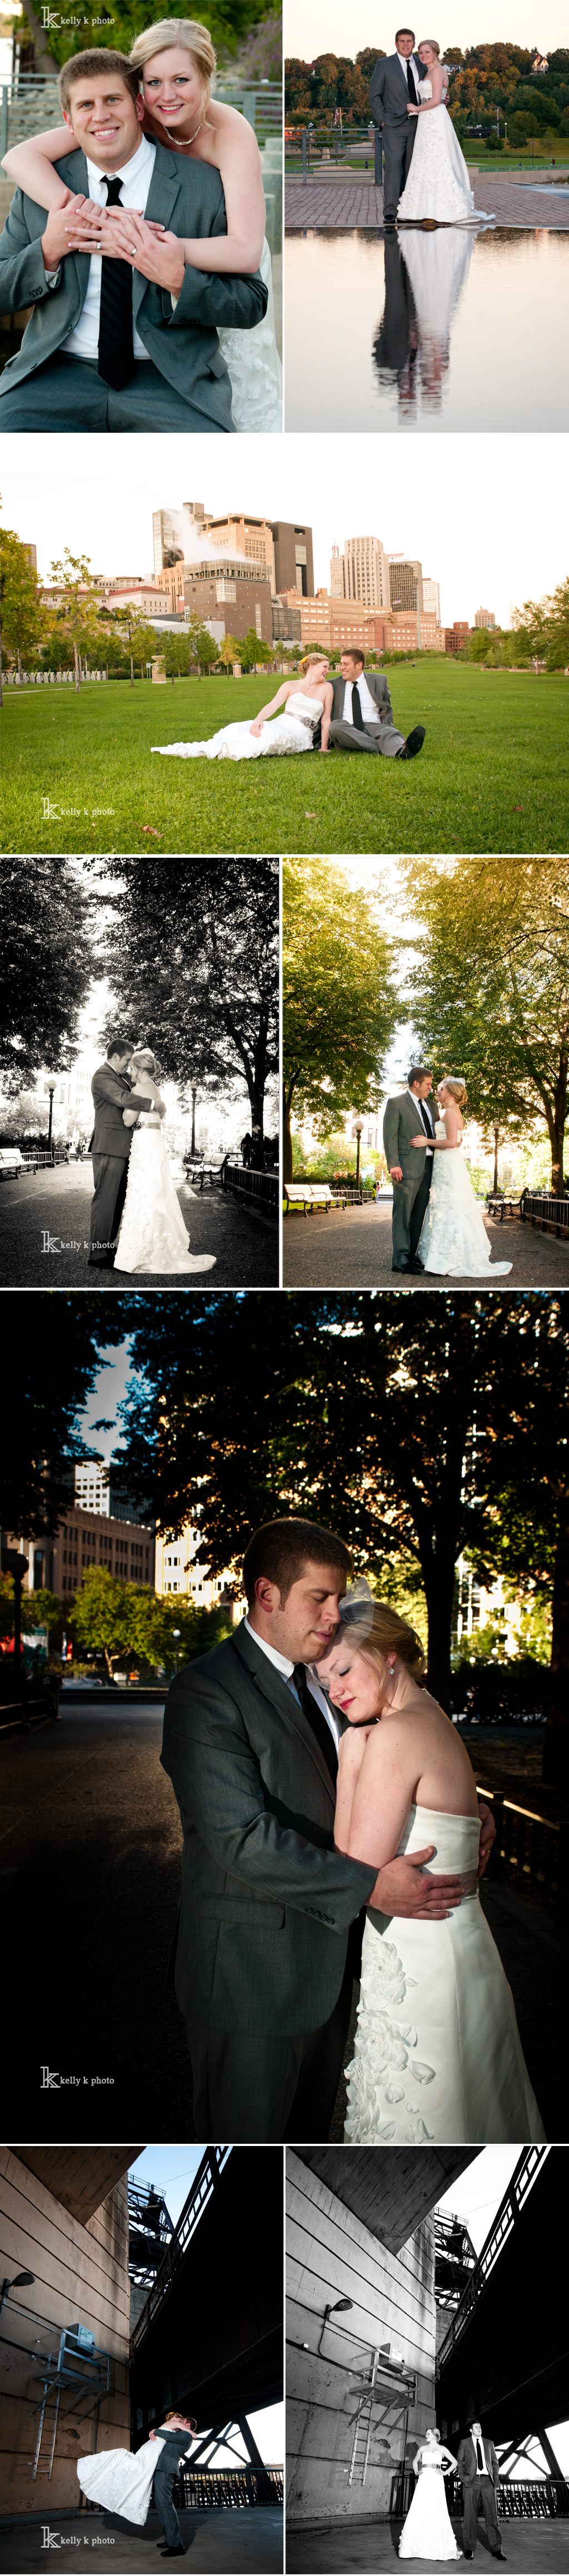 KellyKPhoto_WeddingPhotography-Brown5